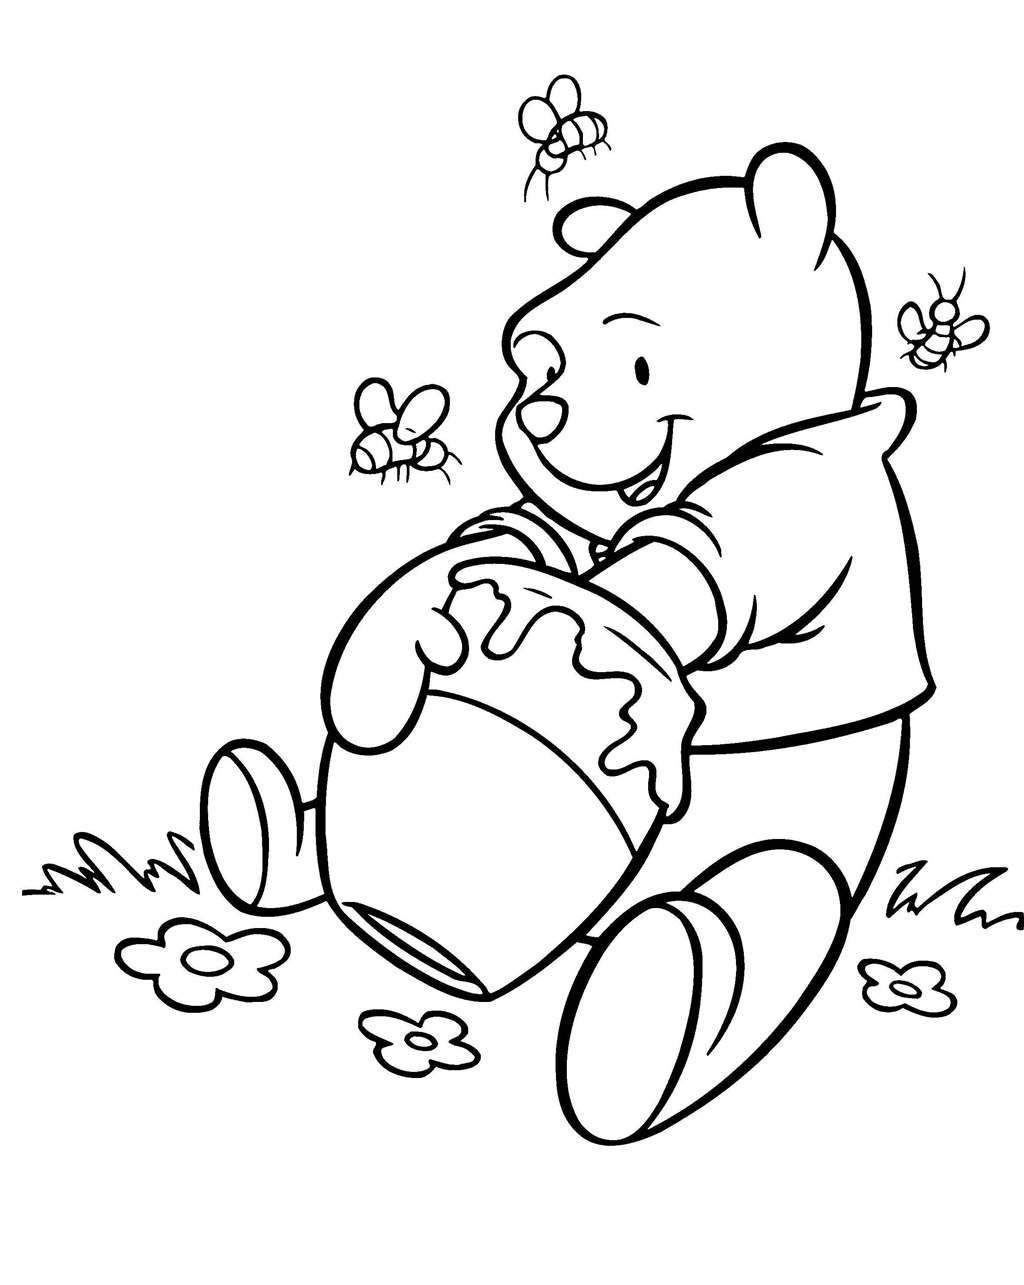 Winnie the pooh clipart black and white banner royalty free download Printable Winnie The Pooh Clipart Online Color Pencil ... banner royalty free download